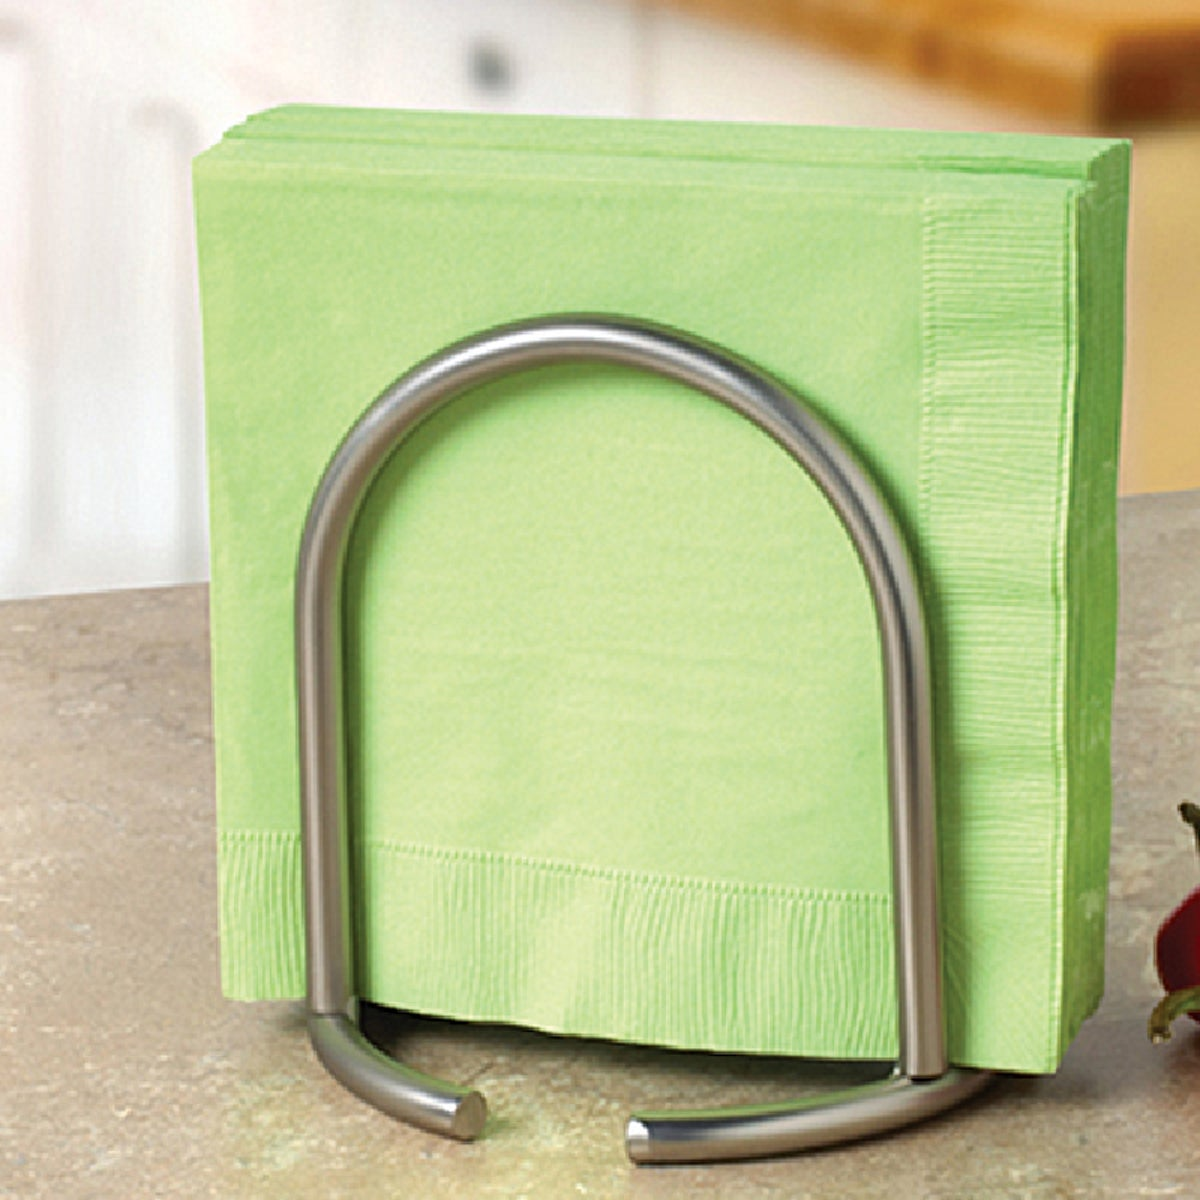 EURO NAPKIN HOLDER - 42378 by Spectrum Diversified